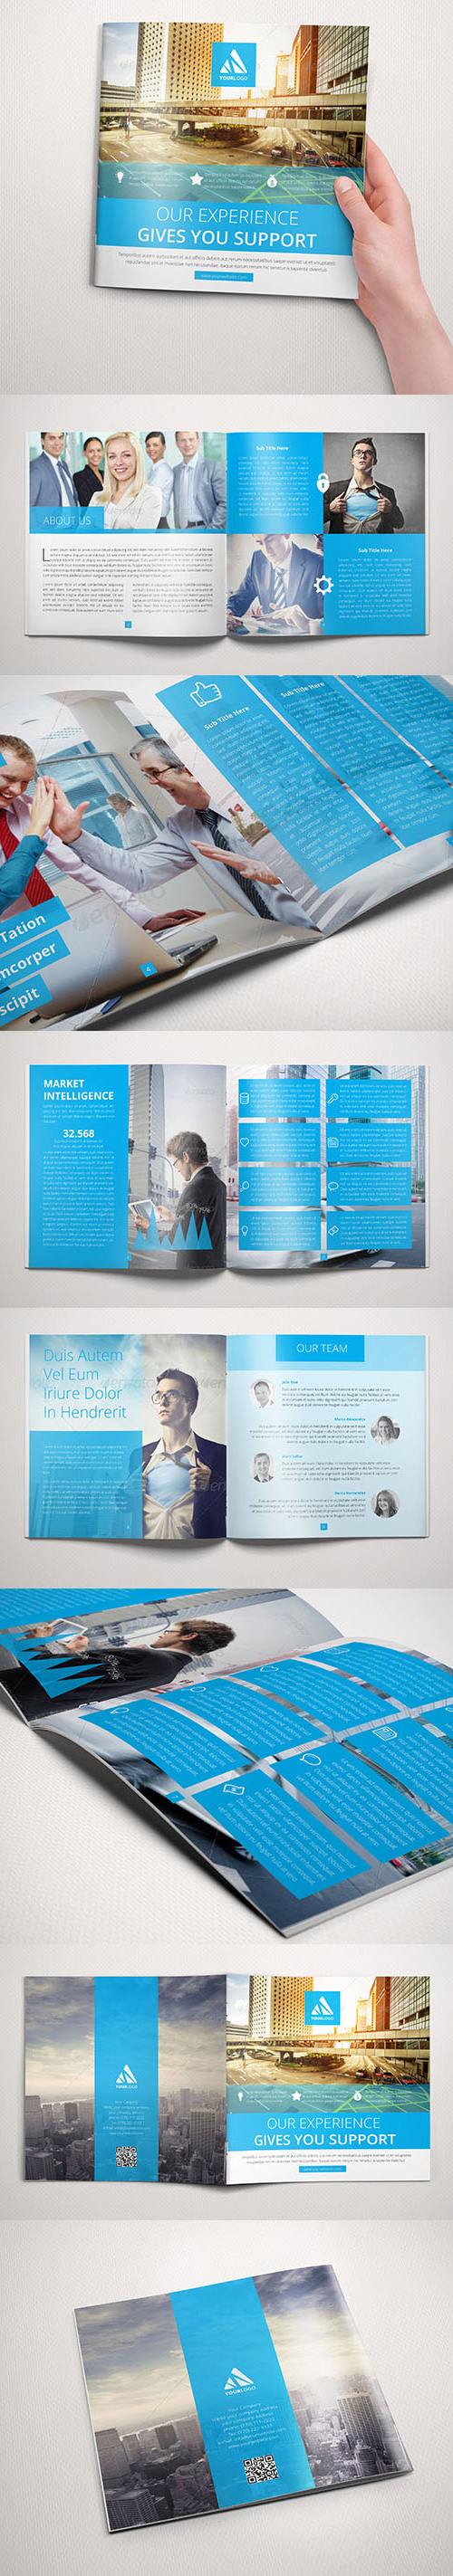 Square Corporate Brochure Design